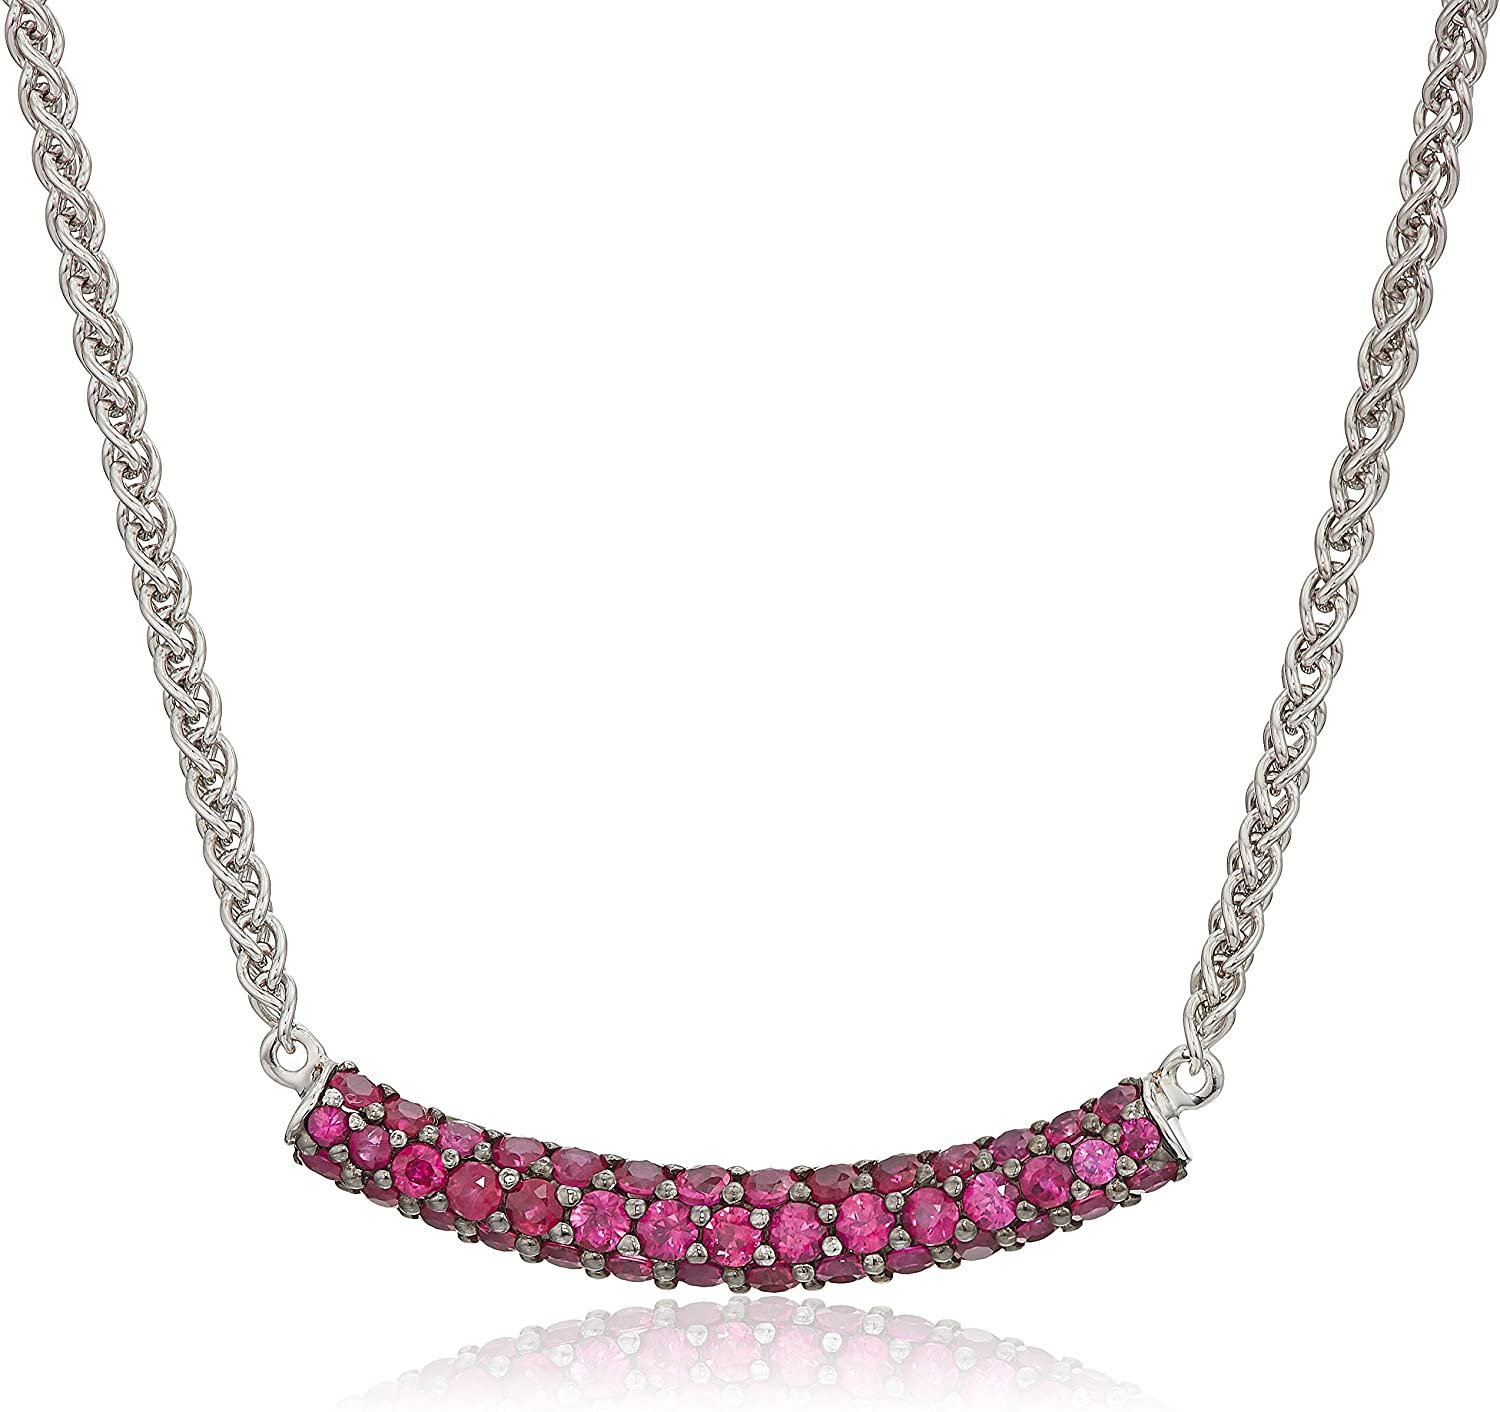 Effy Womens 925 Sterling Silver Ruby Necklace, Red, 18